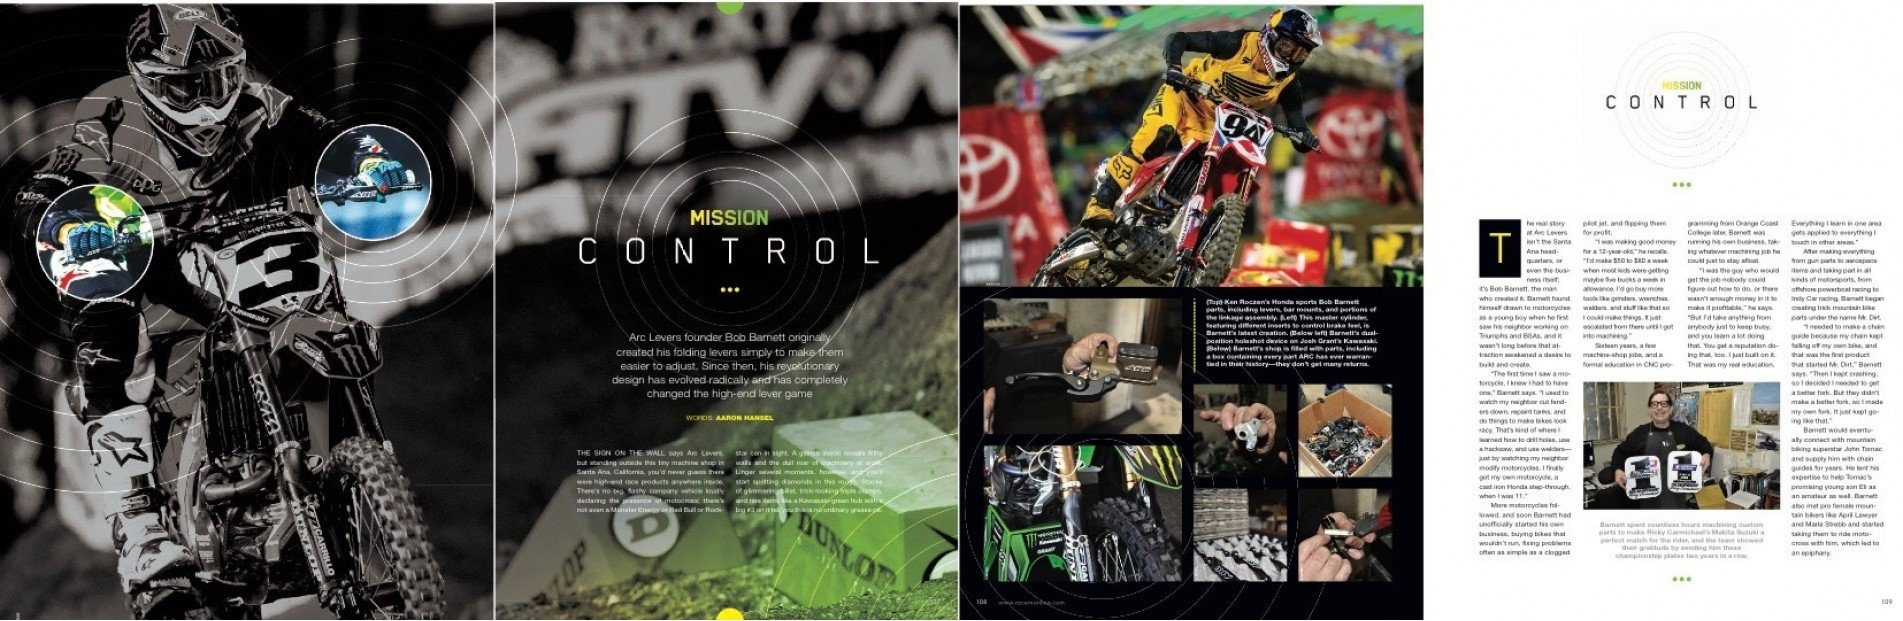 ARC FEATURE STORY IN RACER X MARCH ISSUE!